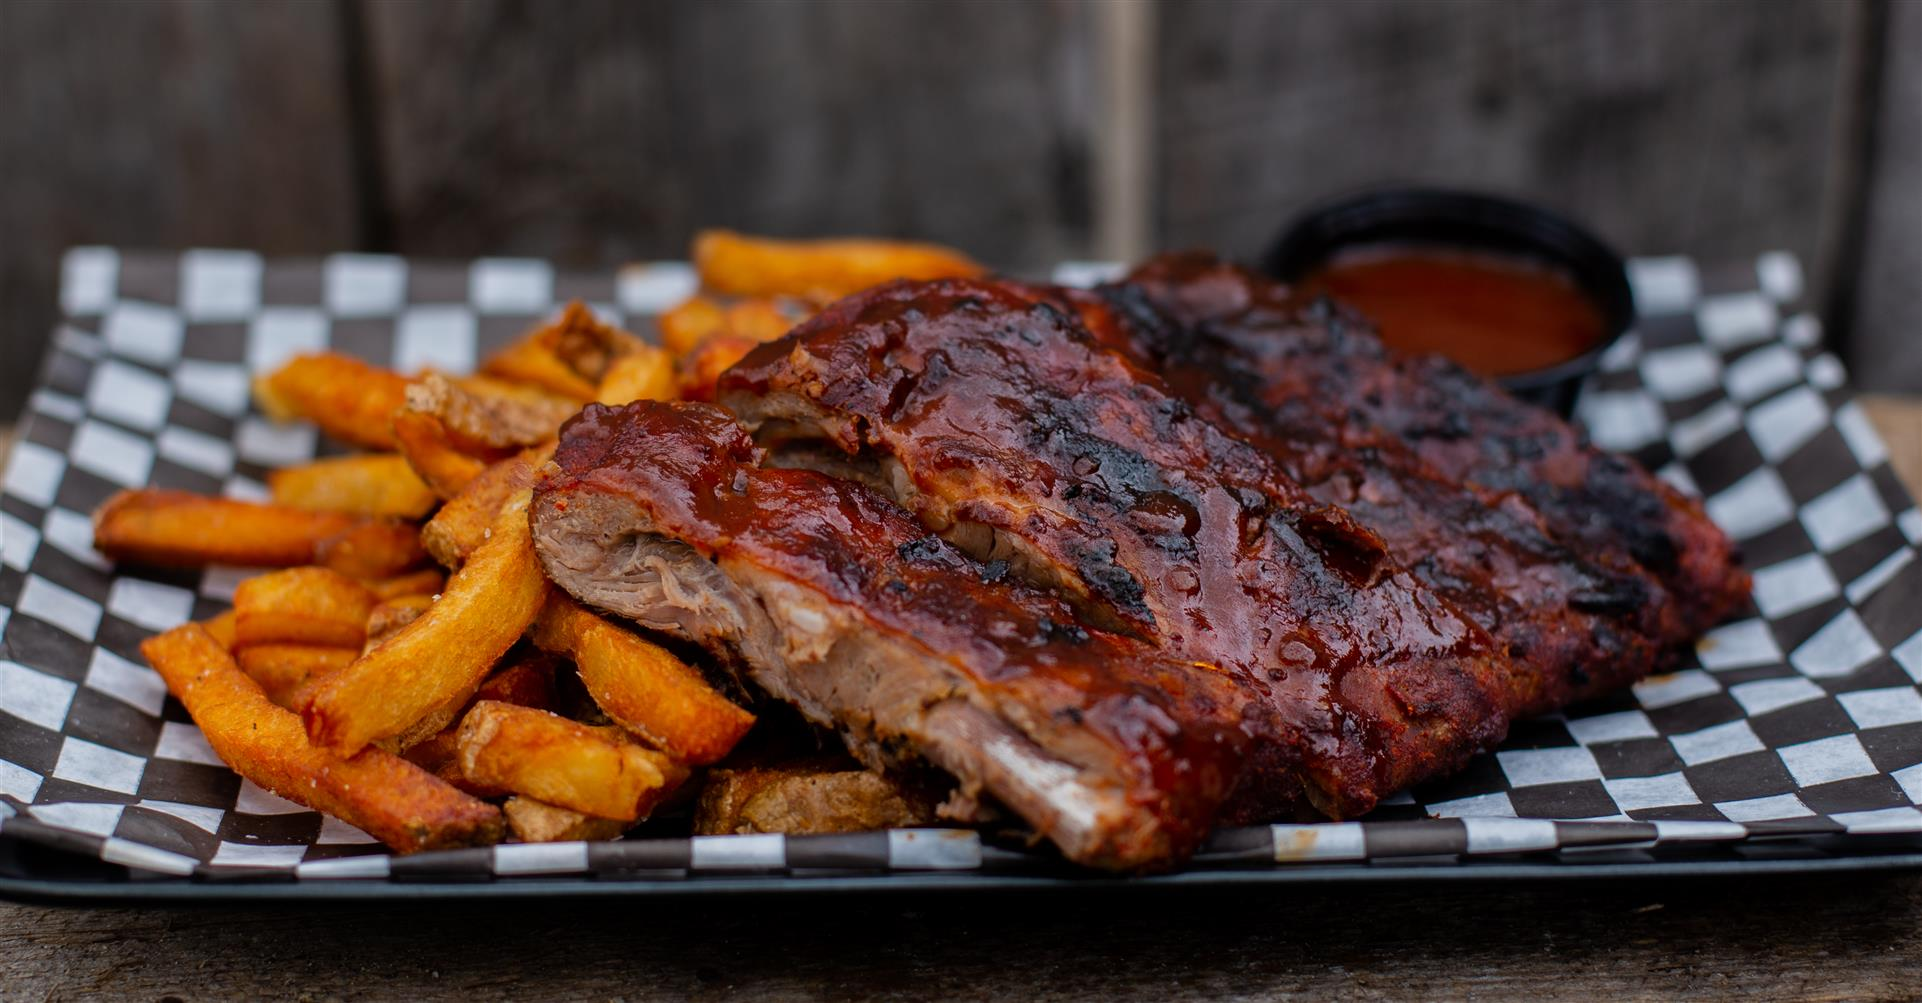 1/3 Rack of ribs with french fries